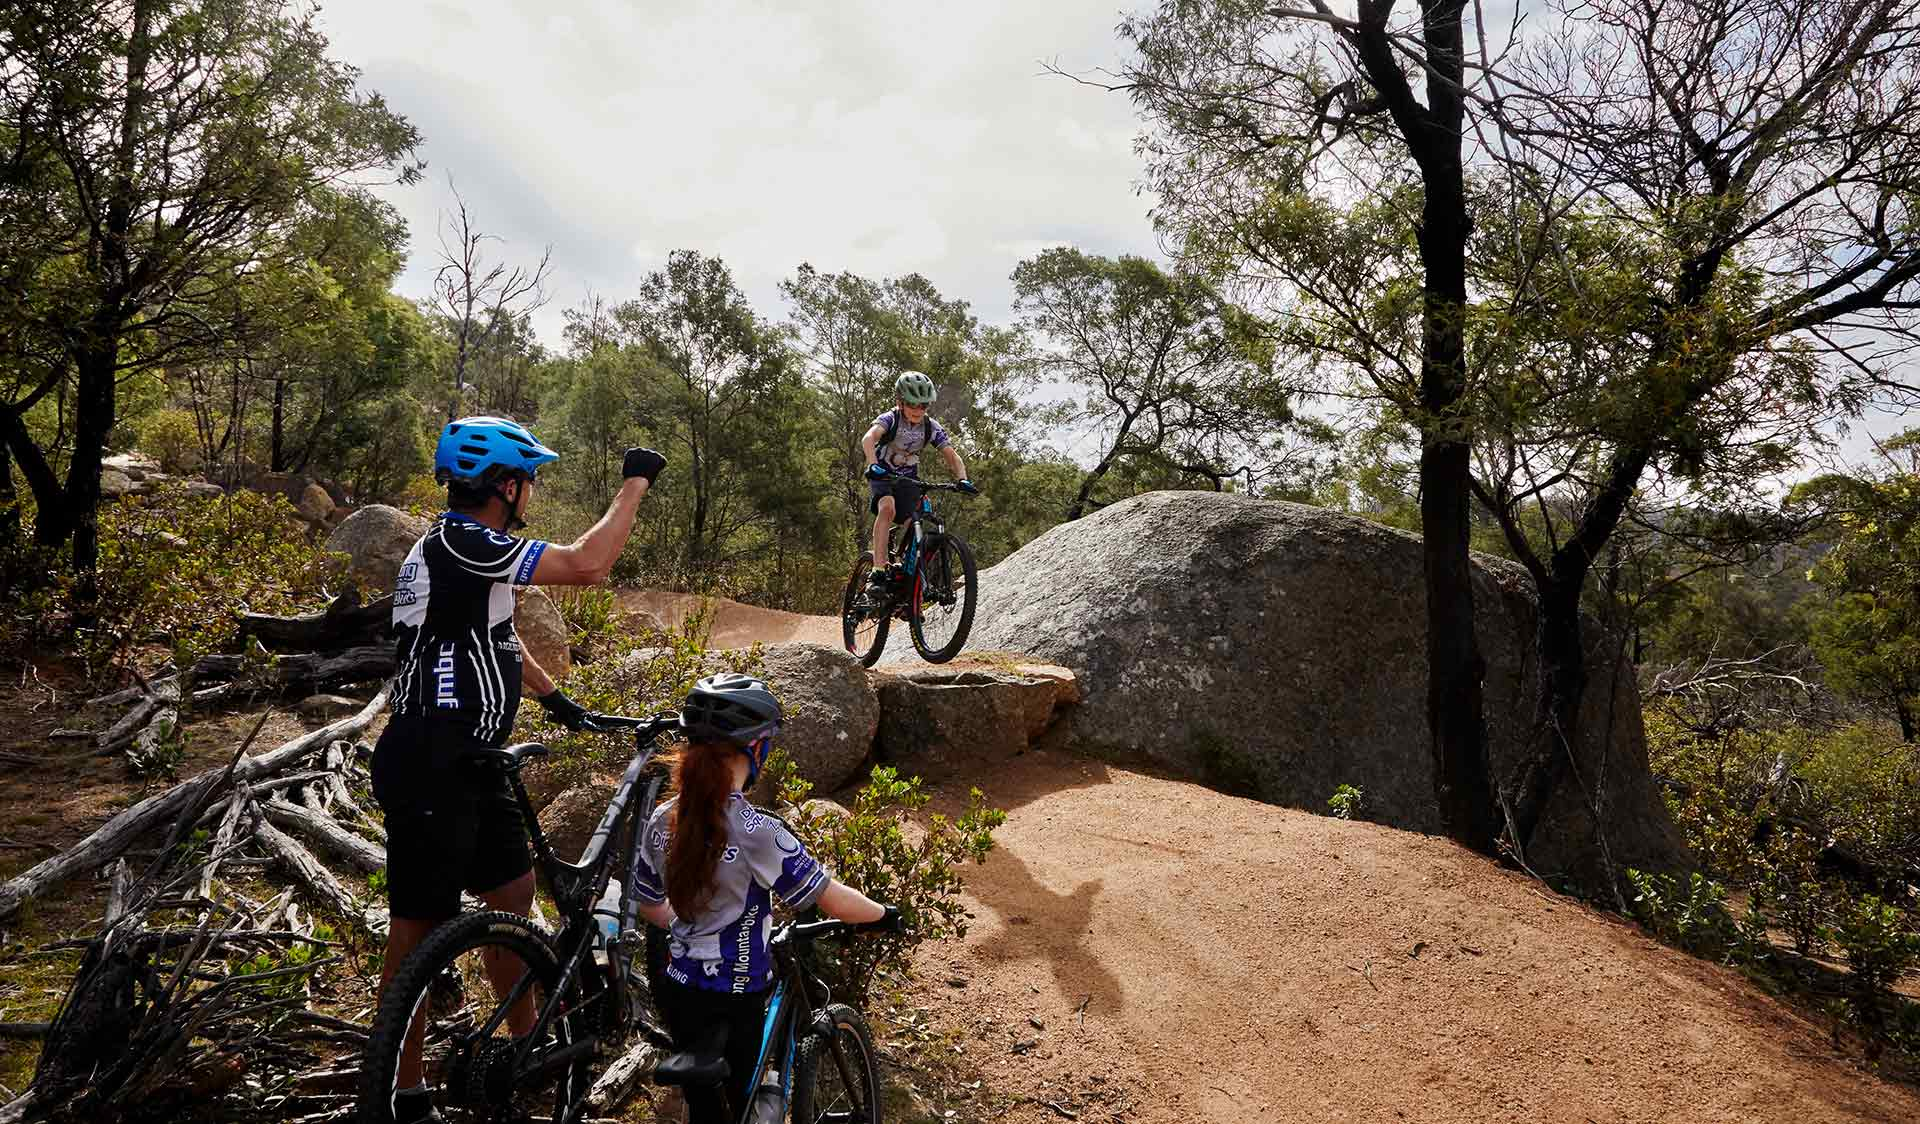 A young mountain biker attempts a drop while cheered on by his father and older sister at the You Yangs Regional Park.